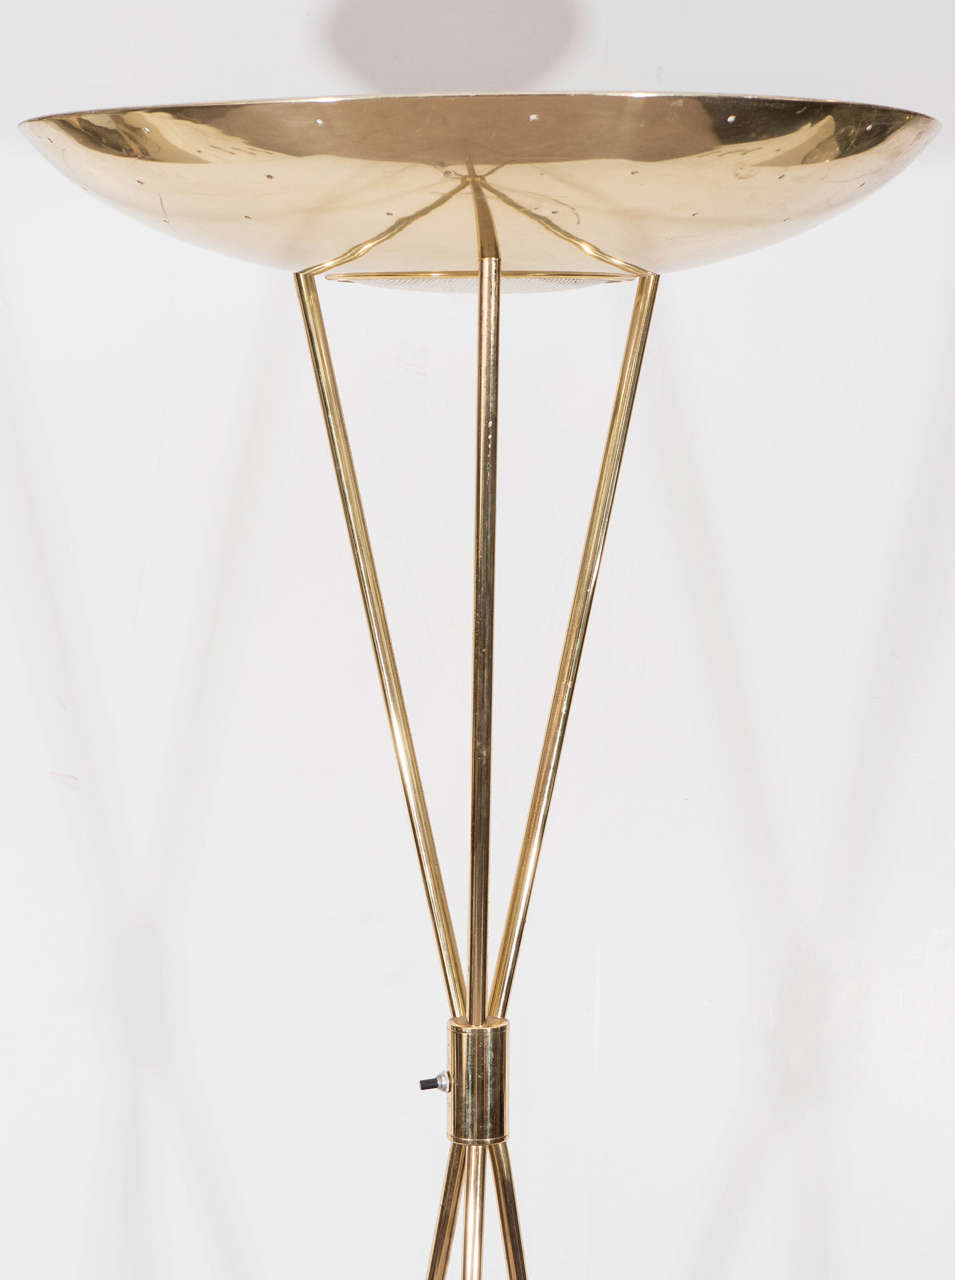 Midcentury Brass Torchiere Tripod Floor Lamp By Gerald